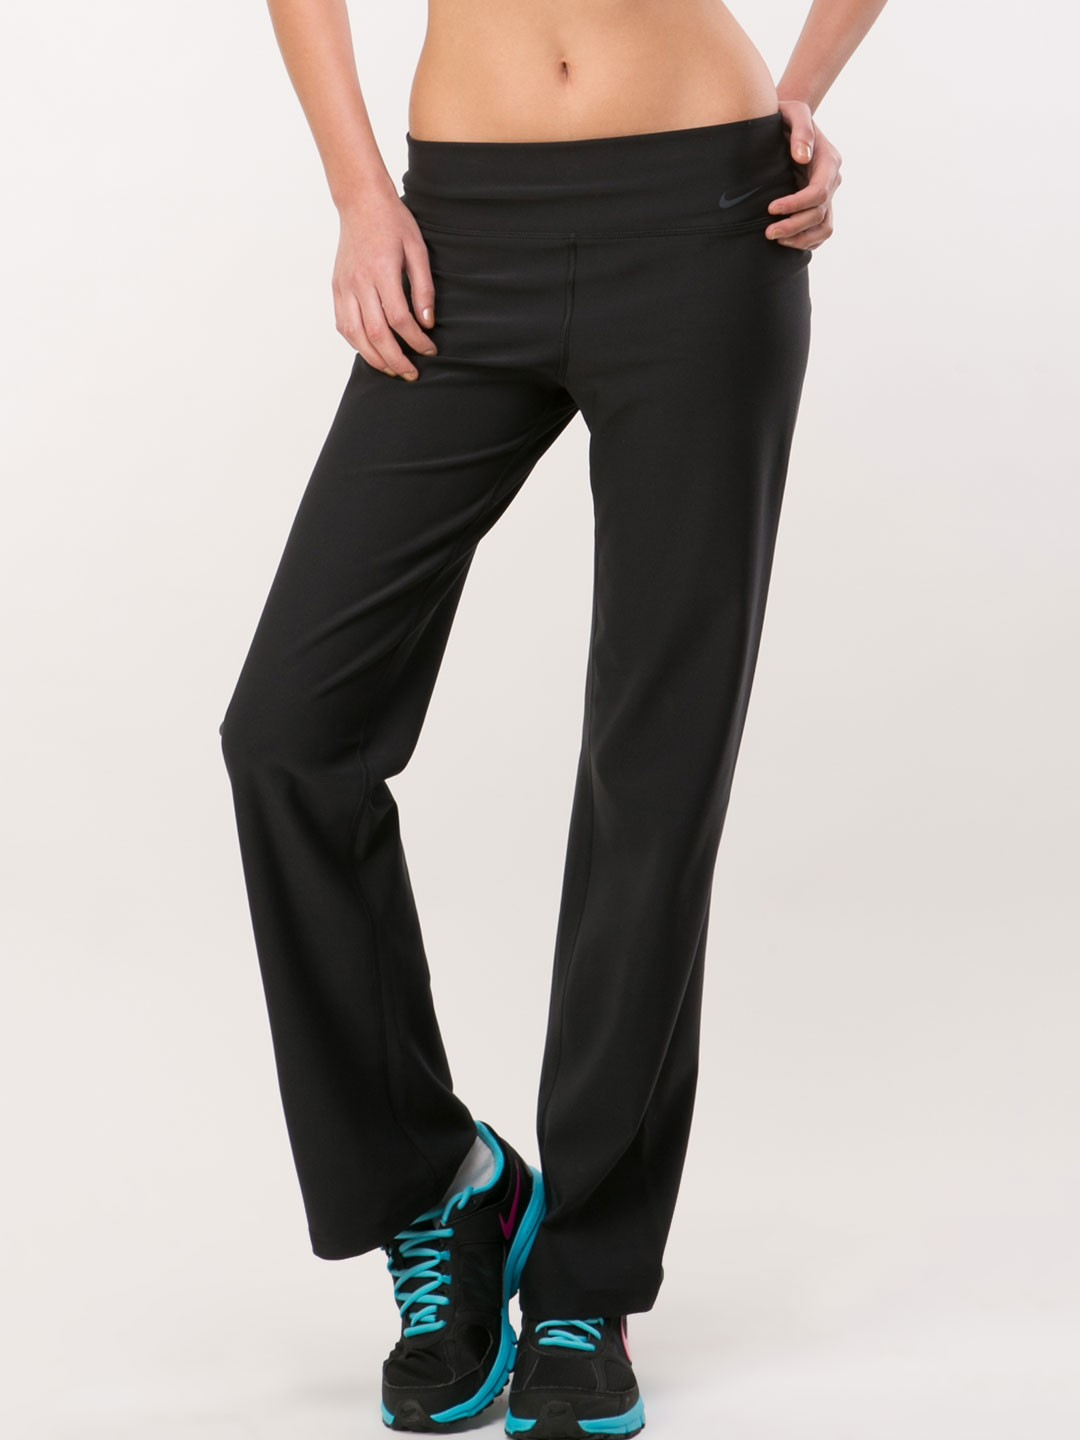 Awesome Nike Offfers A Wide Variety Of Sports Apparel For Women And One Of Them Includes The Track Pants The Track Pants Is Great To Wear During Jogging And Even While Lazing Around At Home Too These Nike Pants Are Quick Drying And Are Shaped In